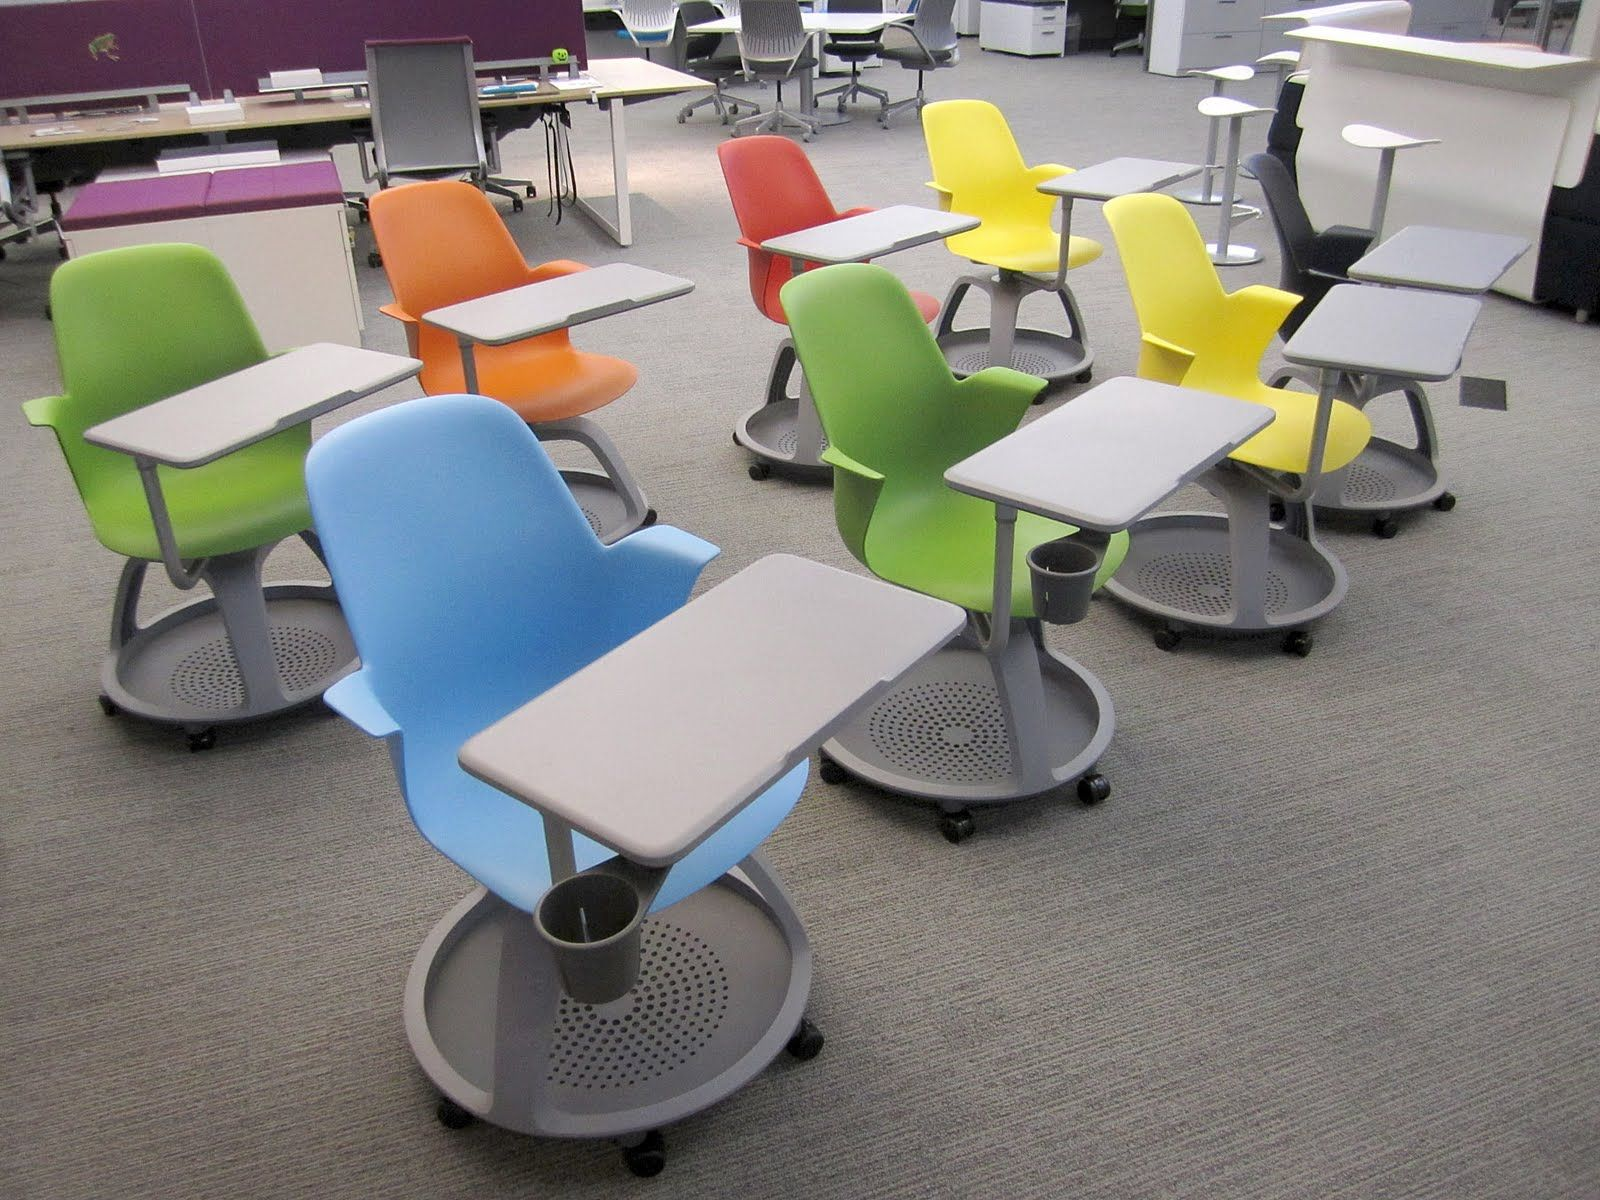 Muebles Escolares Df Note Taking Chairs Creativity En 2019 학교 디자인 교실 Y 과학실